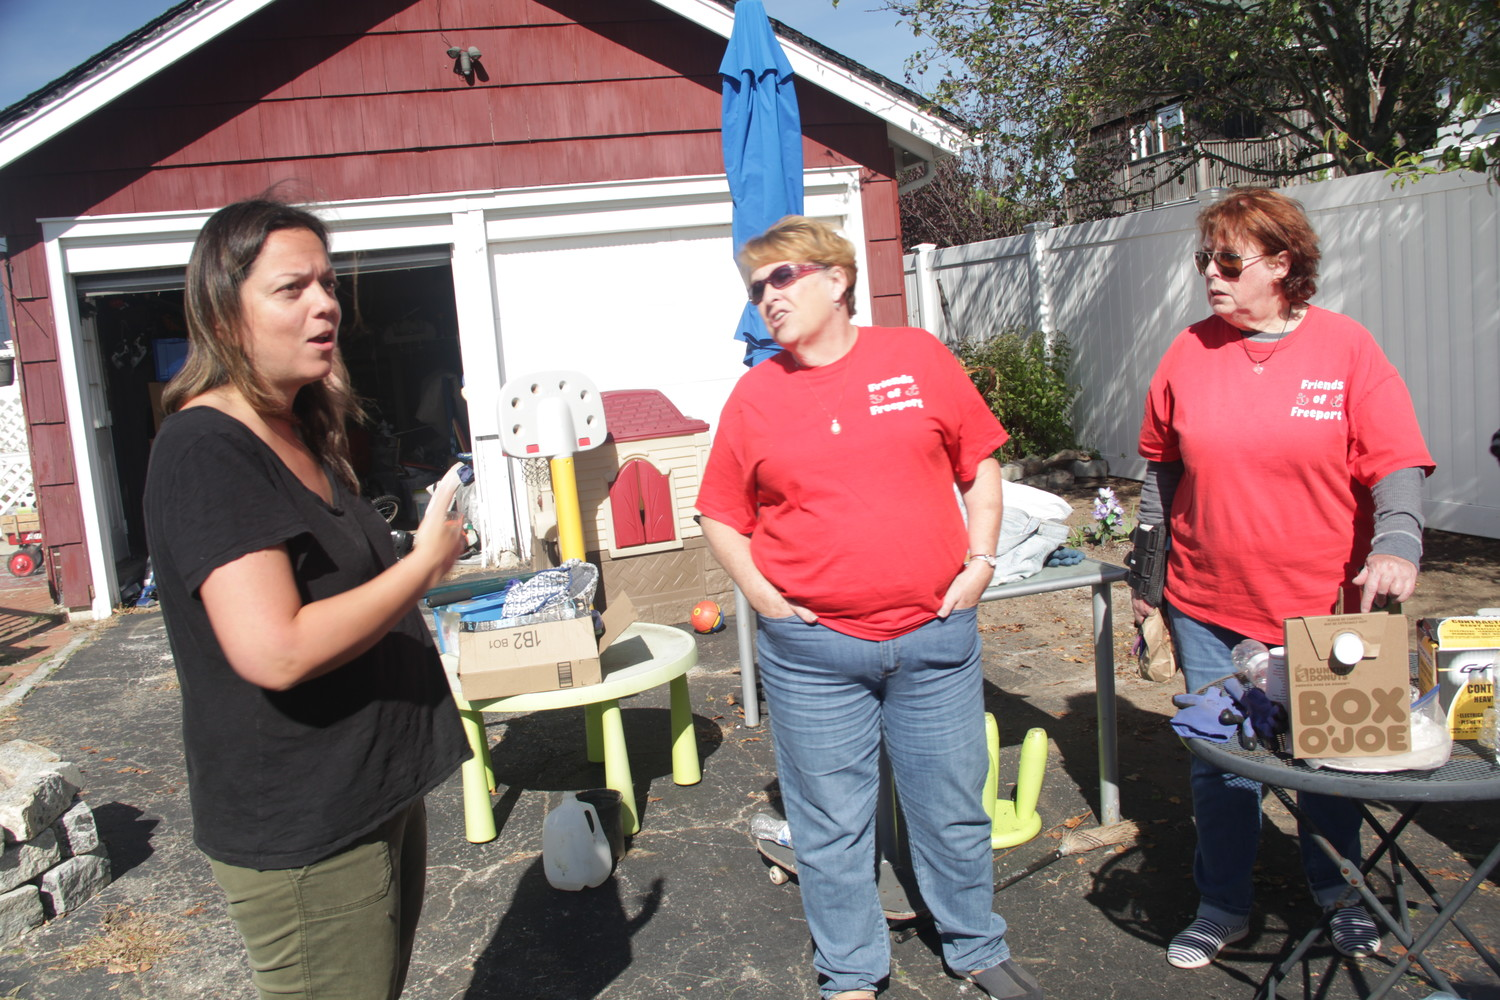 Tess Brunetti, left, Linda Combs Stuerzel, first vice president of Friends of Freeport, and Lois Howes, president of Friends of Freeport, right, chatted after a morning cleanup of Brunetti's yard in Baldwin last Saturday.